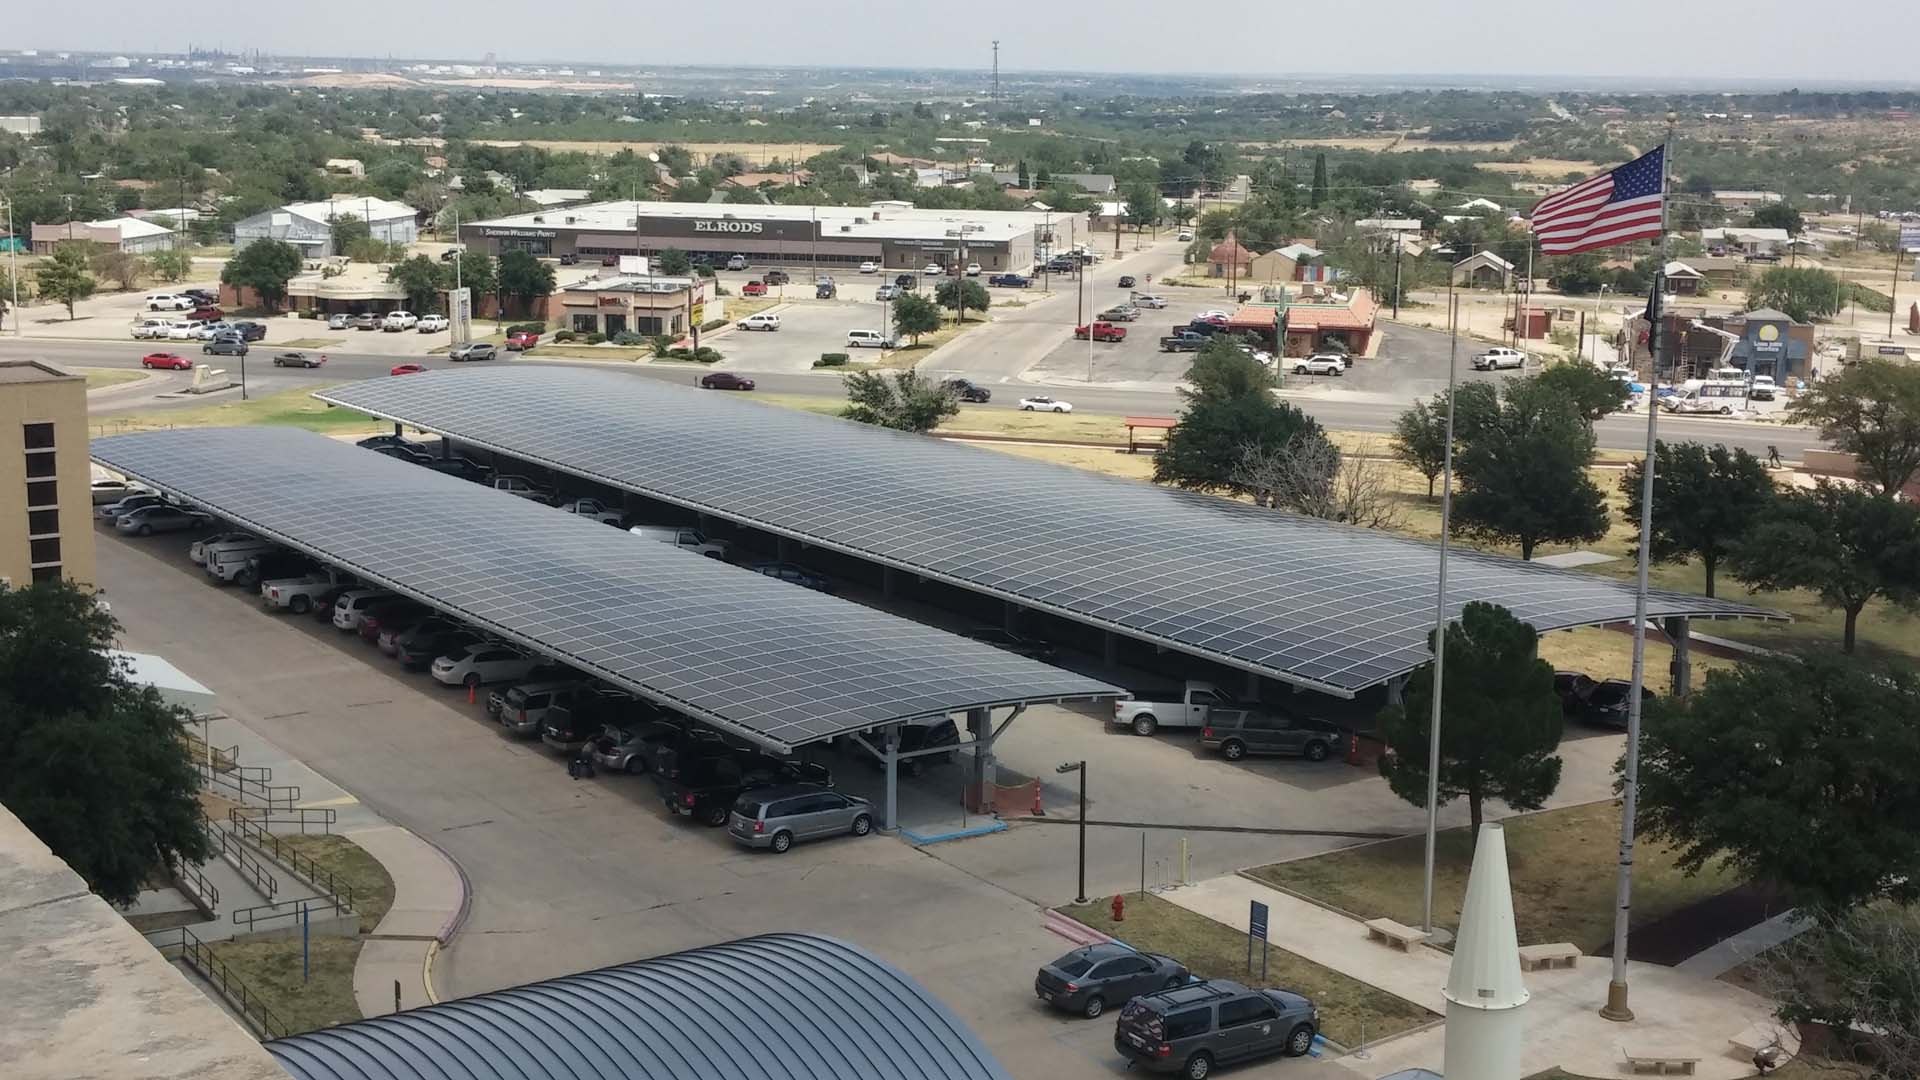 SolarWorld said that the partnership program was designed to accelerate development of commercial PV projects of between 50kW and 2MW.